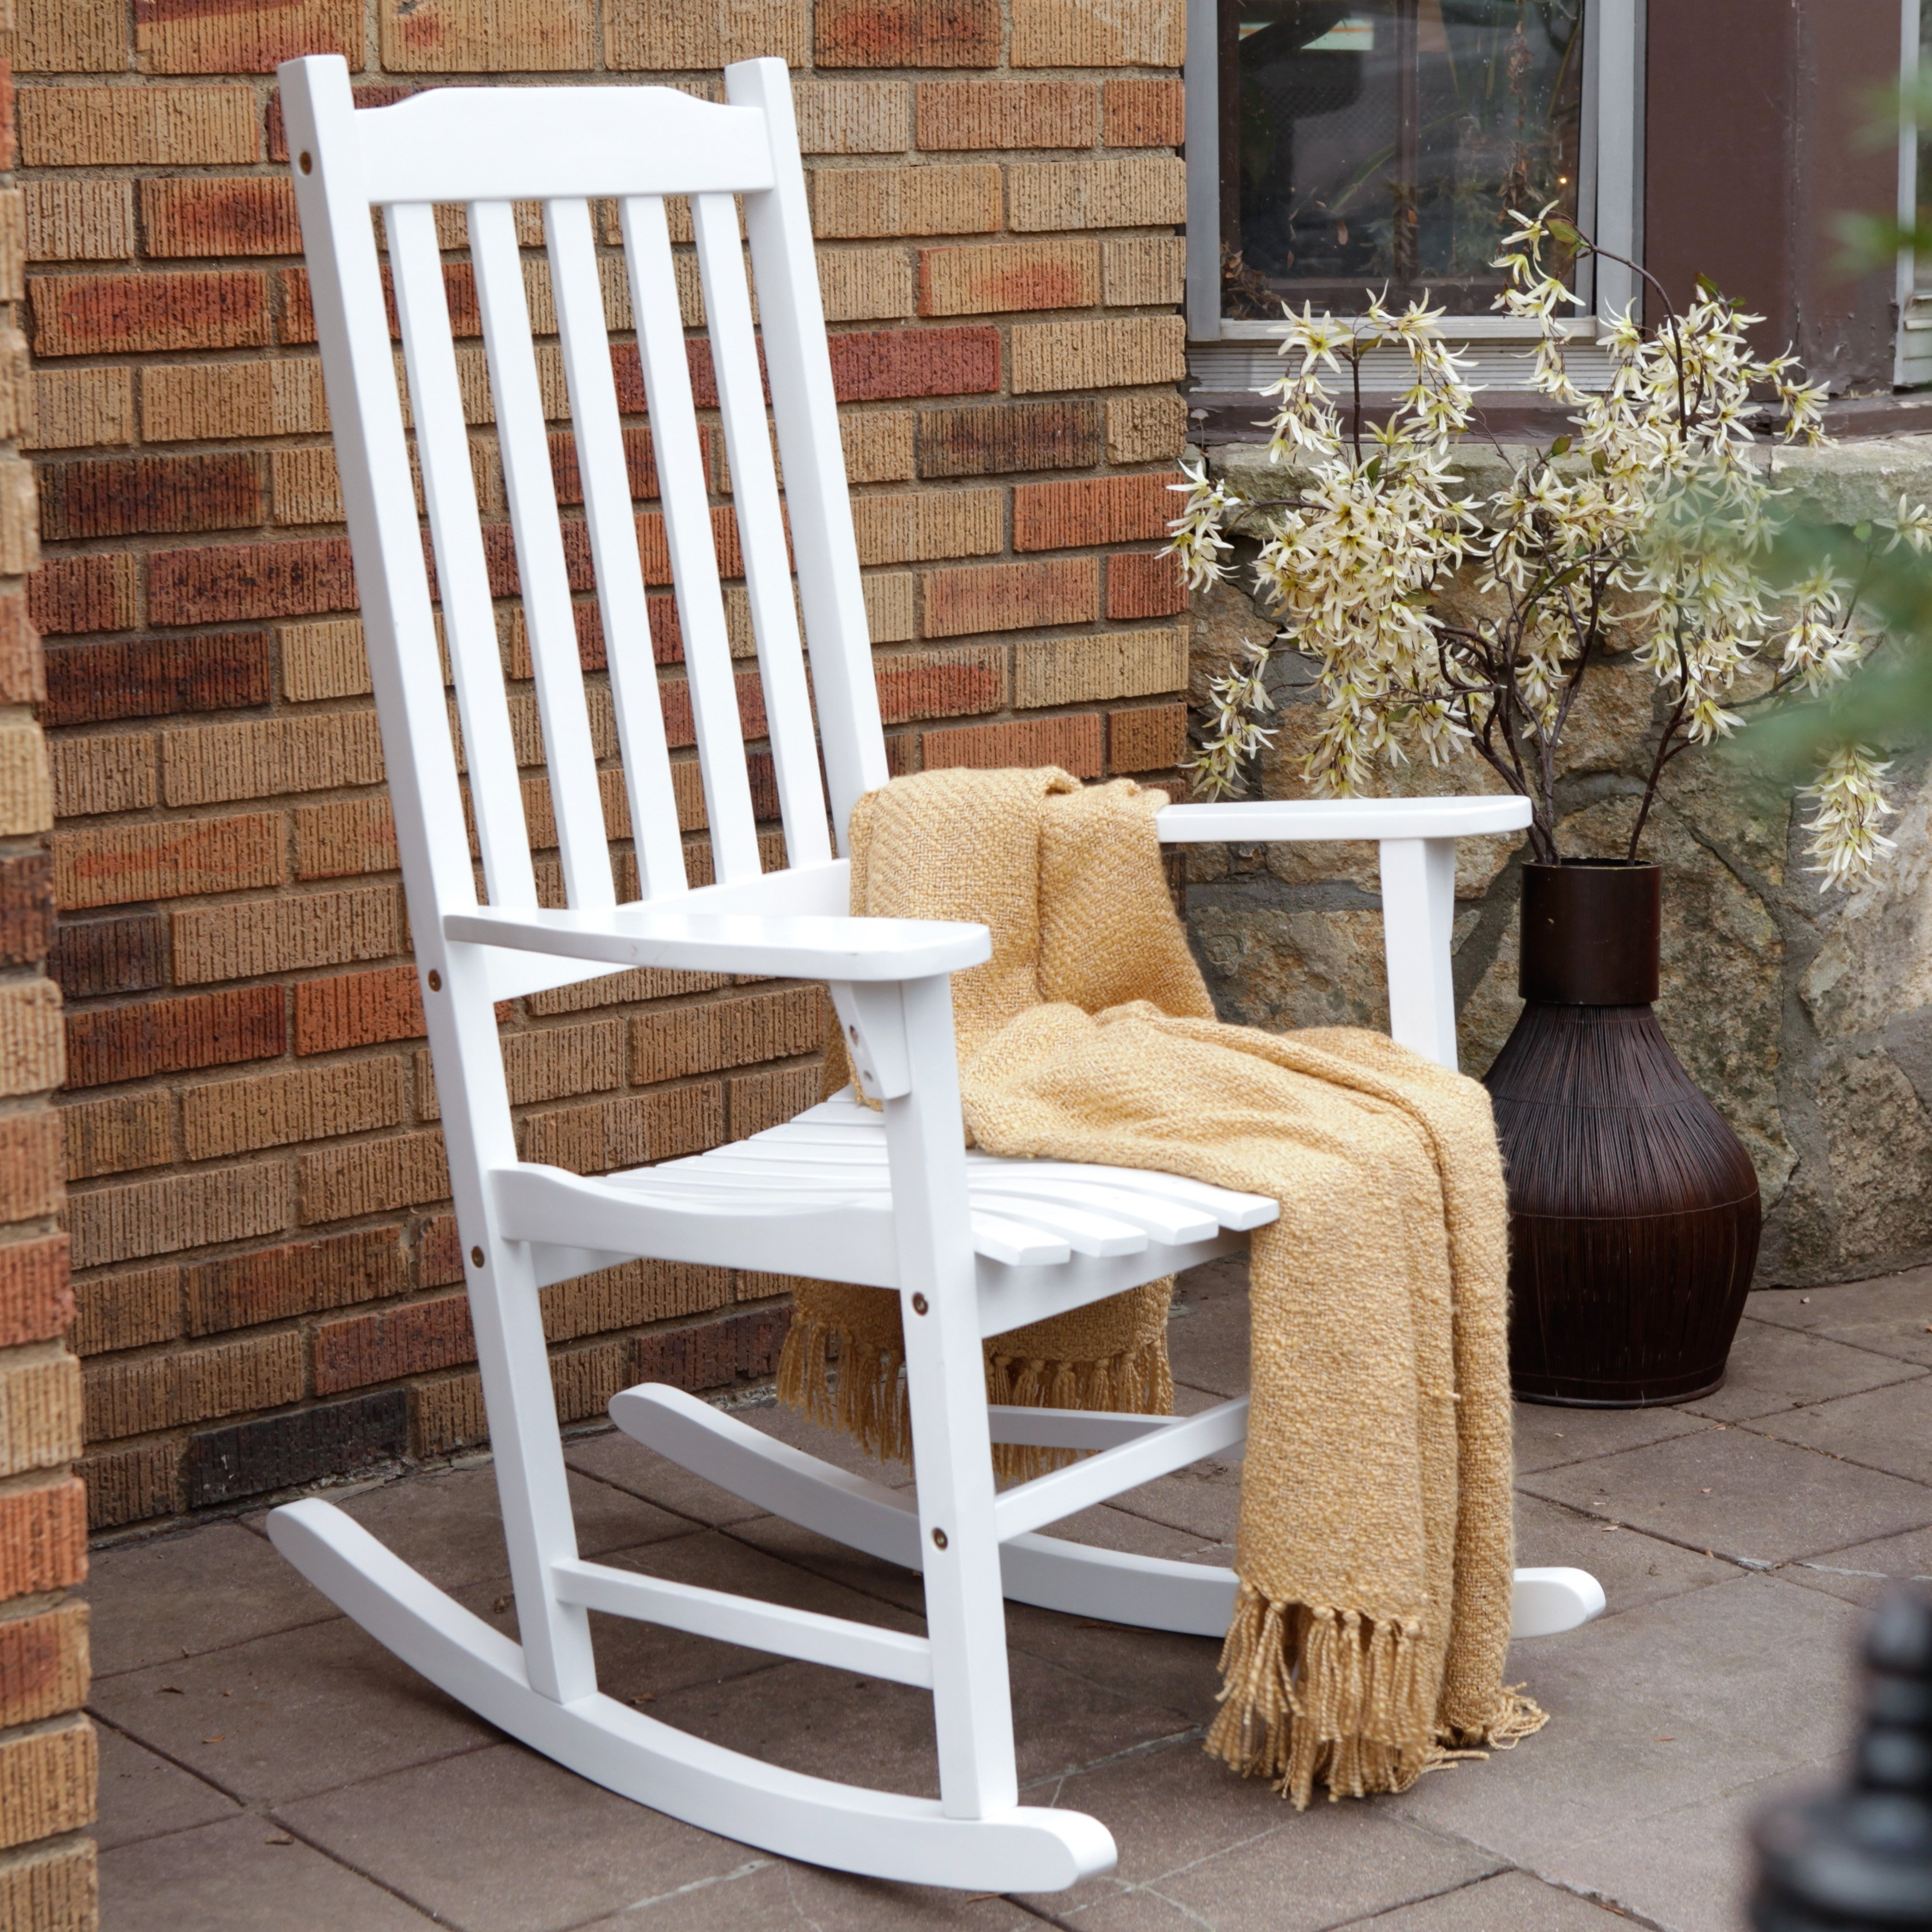 Coral Coast Indoor/outdoor Mission Slat Rocking Chair – White Pertaining To Well Known Patio Rocking Chairs (View 1 of 20)